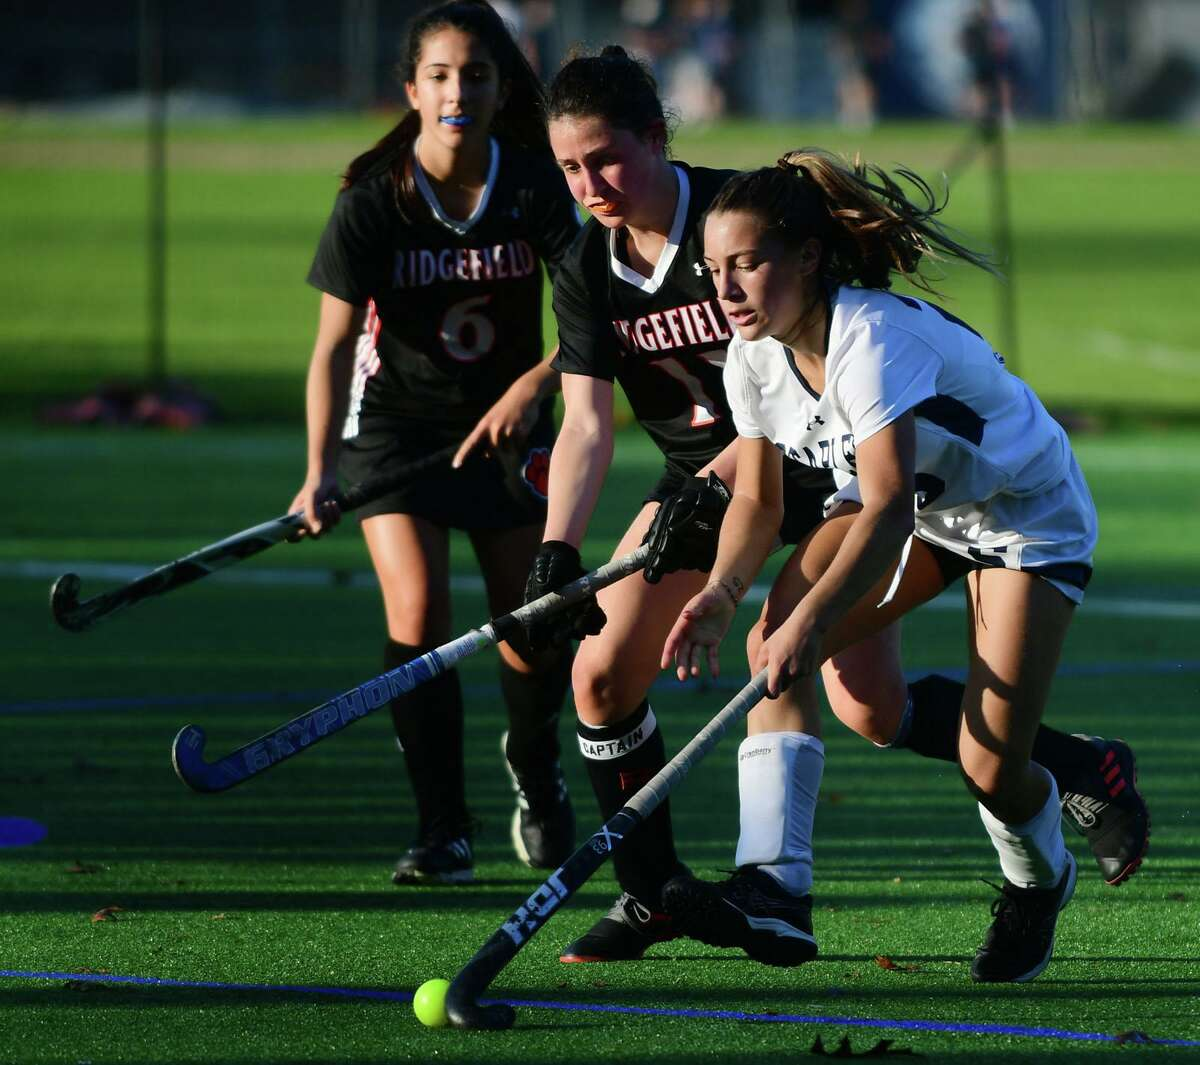 Ridgefield's Olivia DeStefano (11) and Staples' Jessica Leon (20) battle for the ball in their FCIAC Central championship game Tuesday.